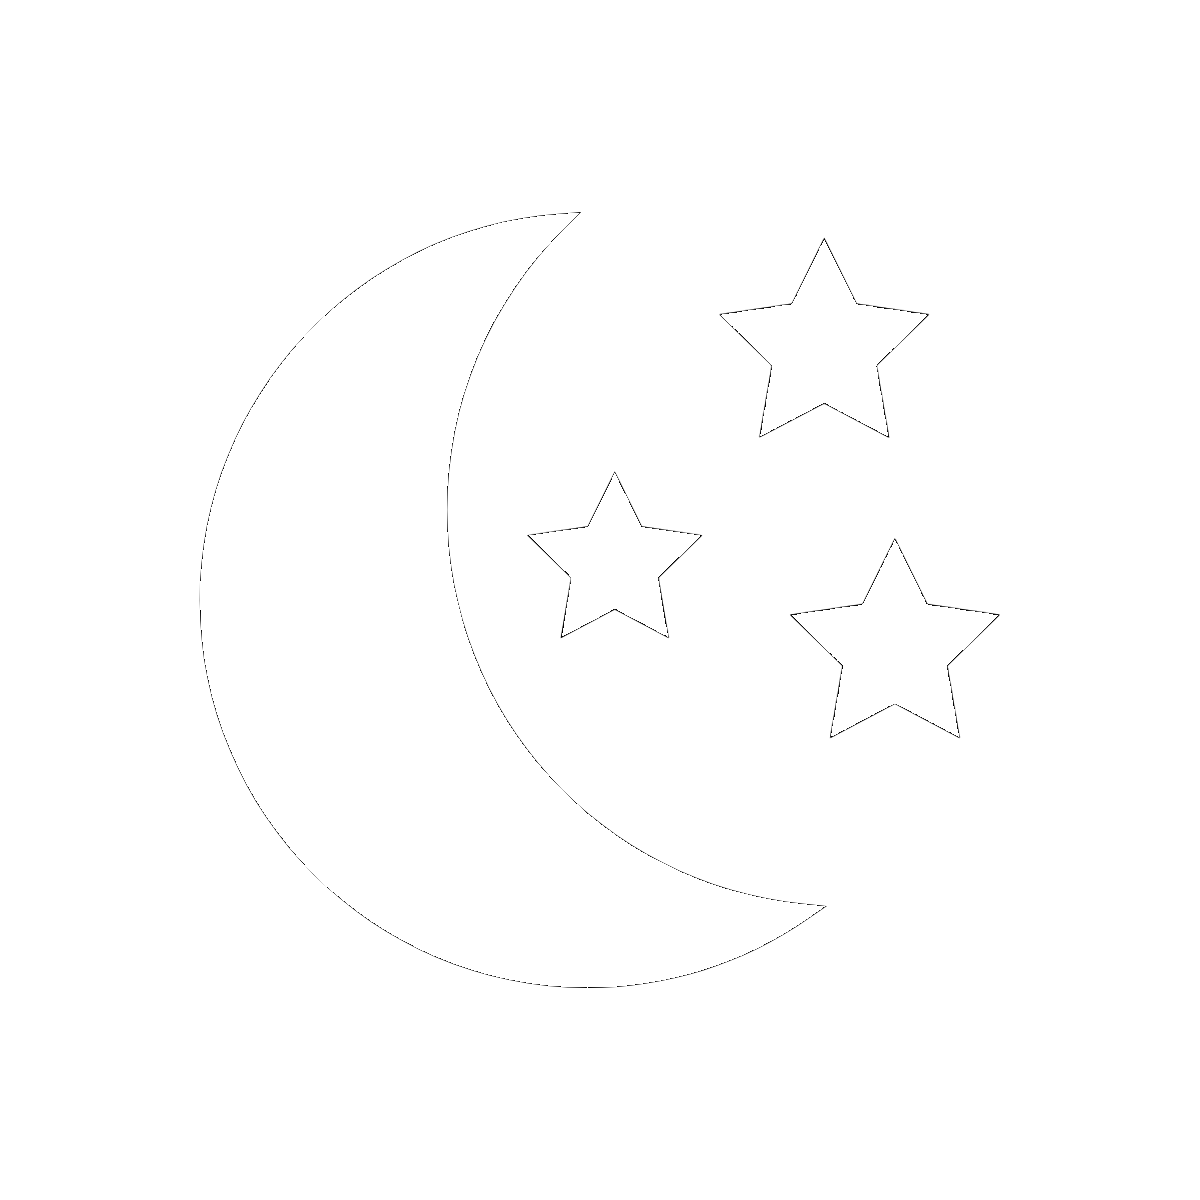 Symbol The Moon and Stars